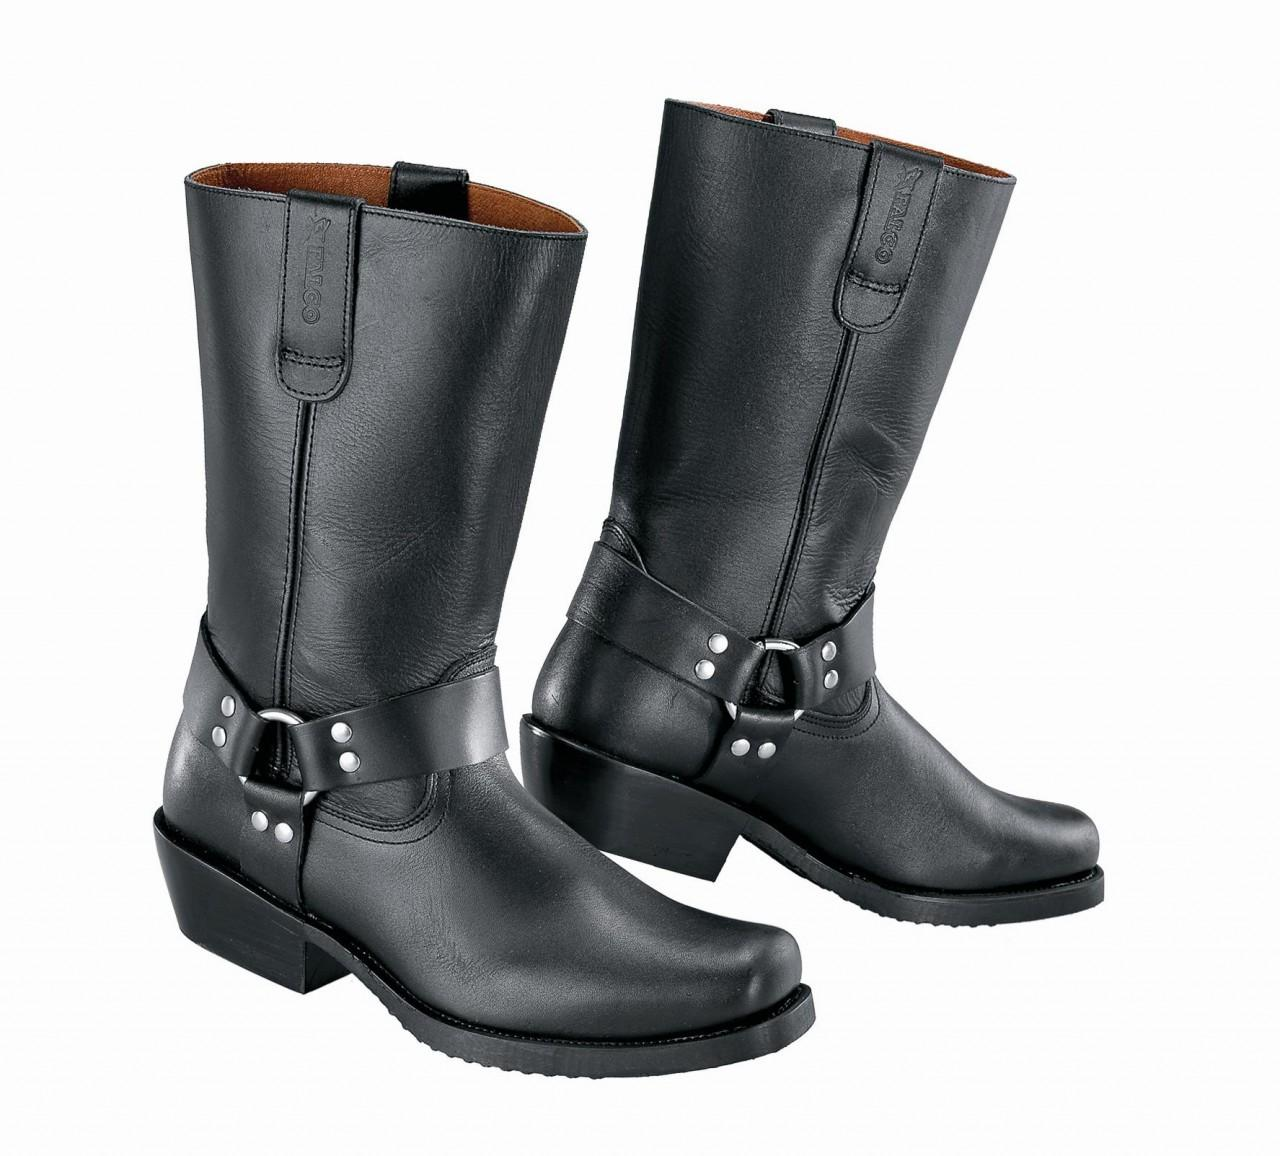 Model Milwaukee Leather Womenu0026#39;s Black Motorcycle Riding Boots MBL201 Size 5.5 U2022 CAD $62.86 - PicClick CA